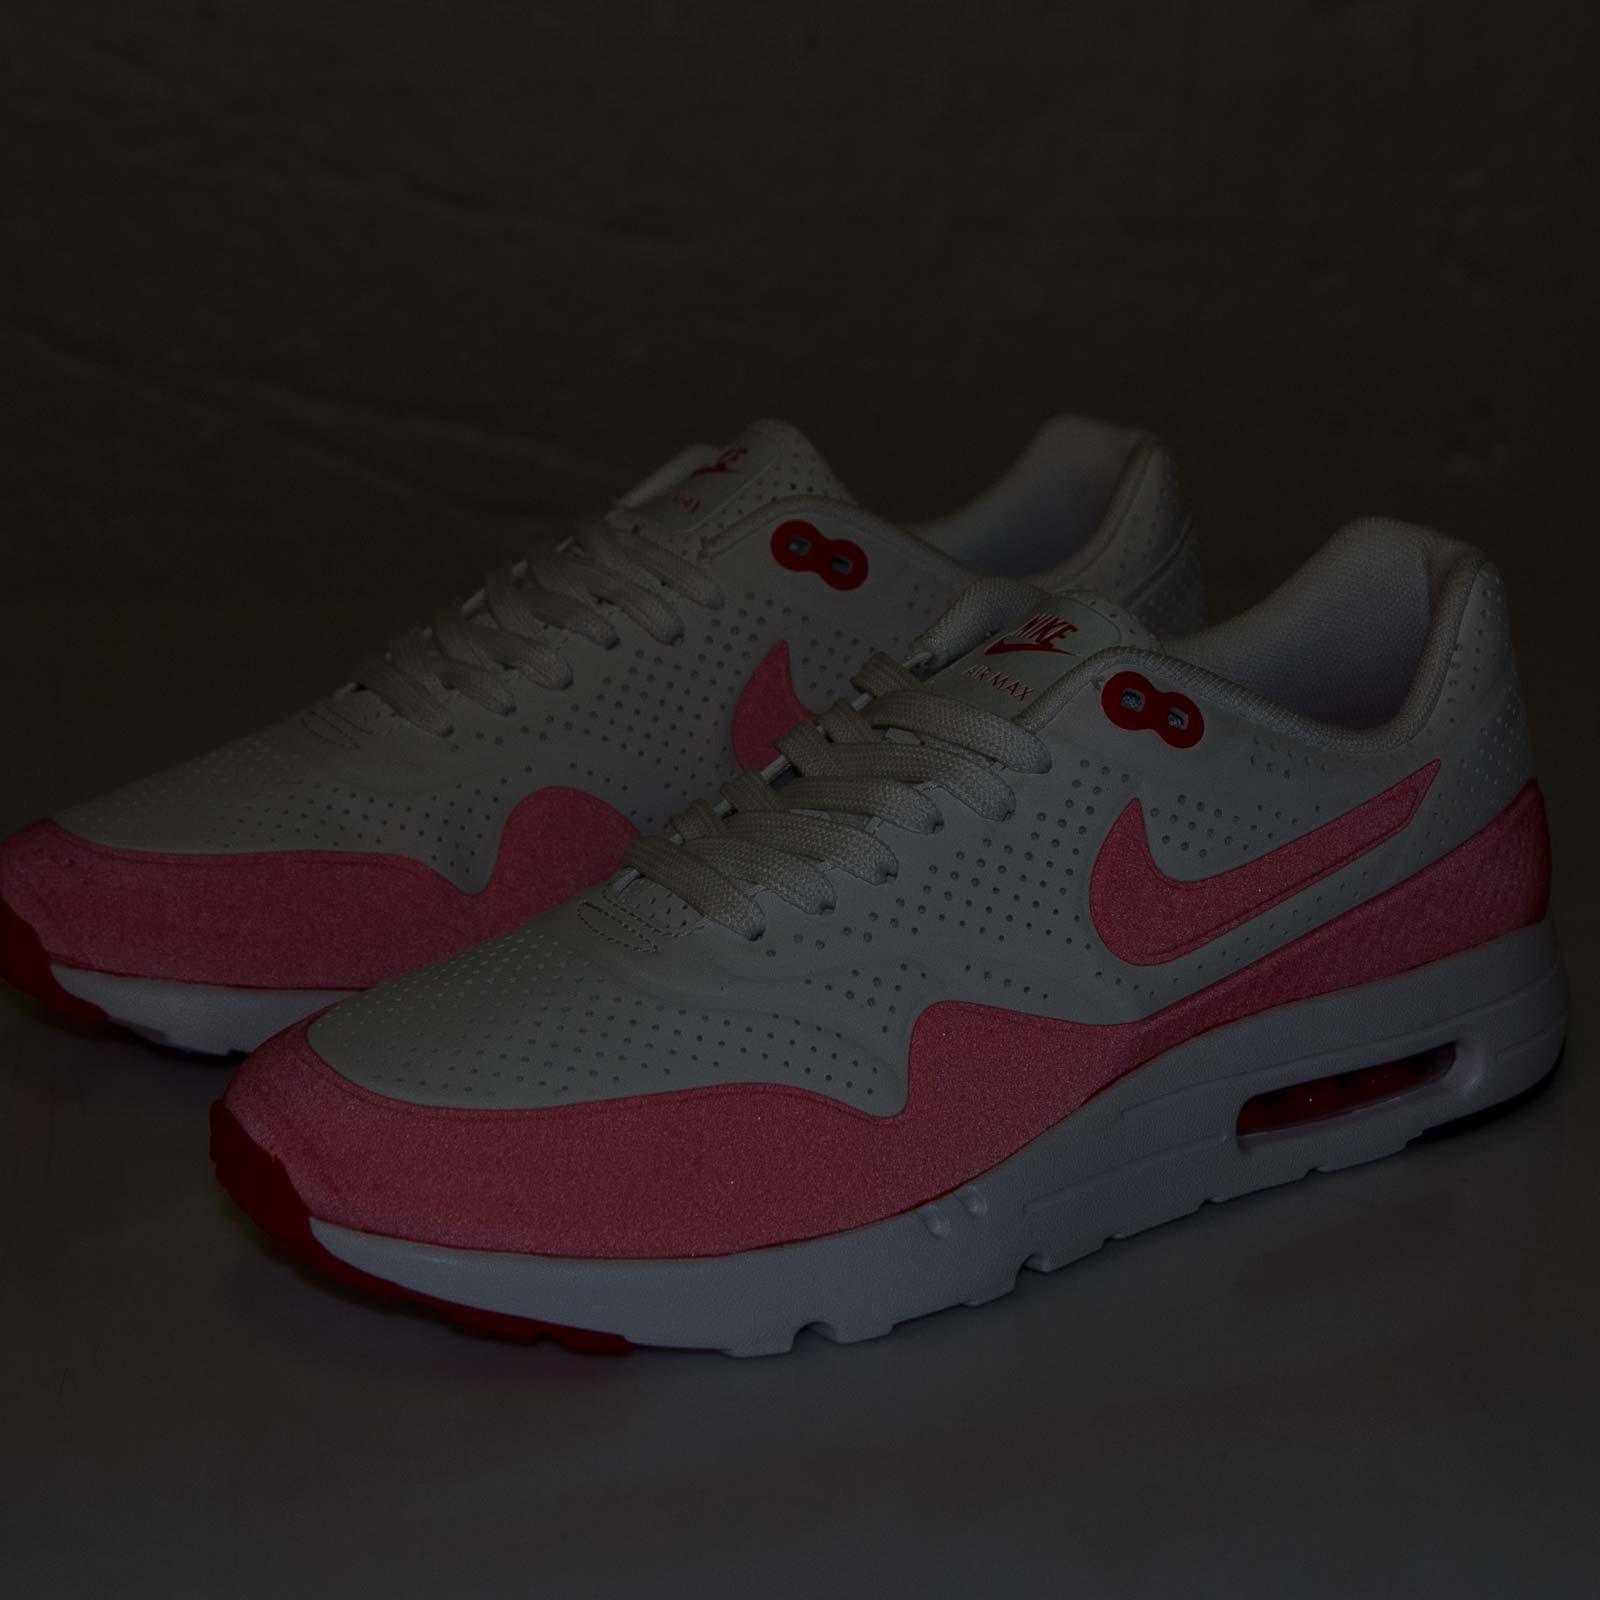 b20247bbe7 Nike Air Max 1 Ultra Moire - 705297-106 - Sneakersnstuff | sneakers ...